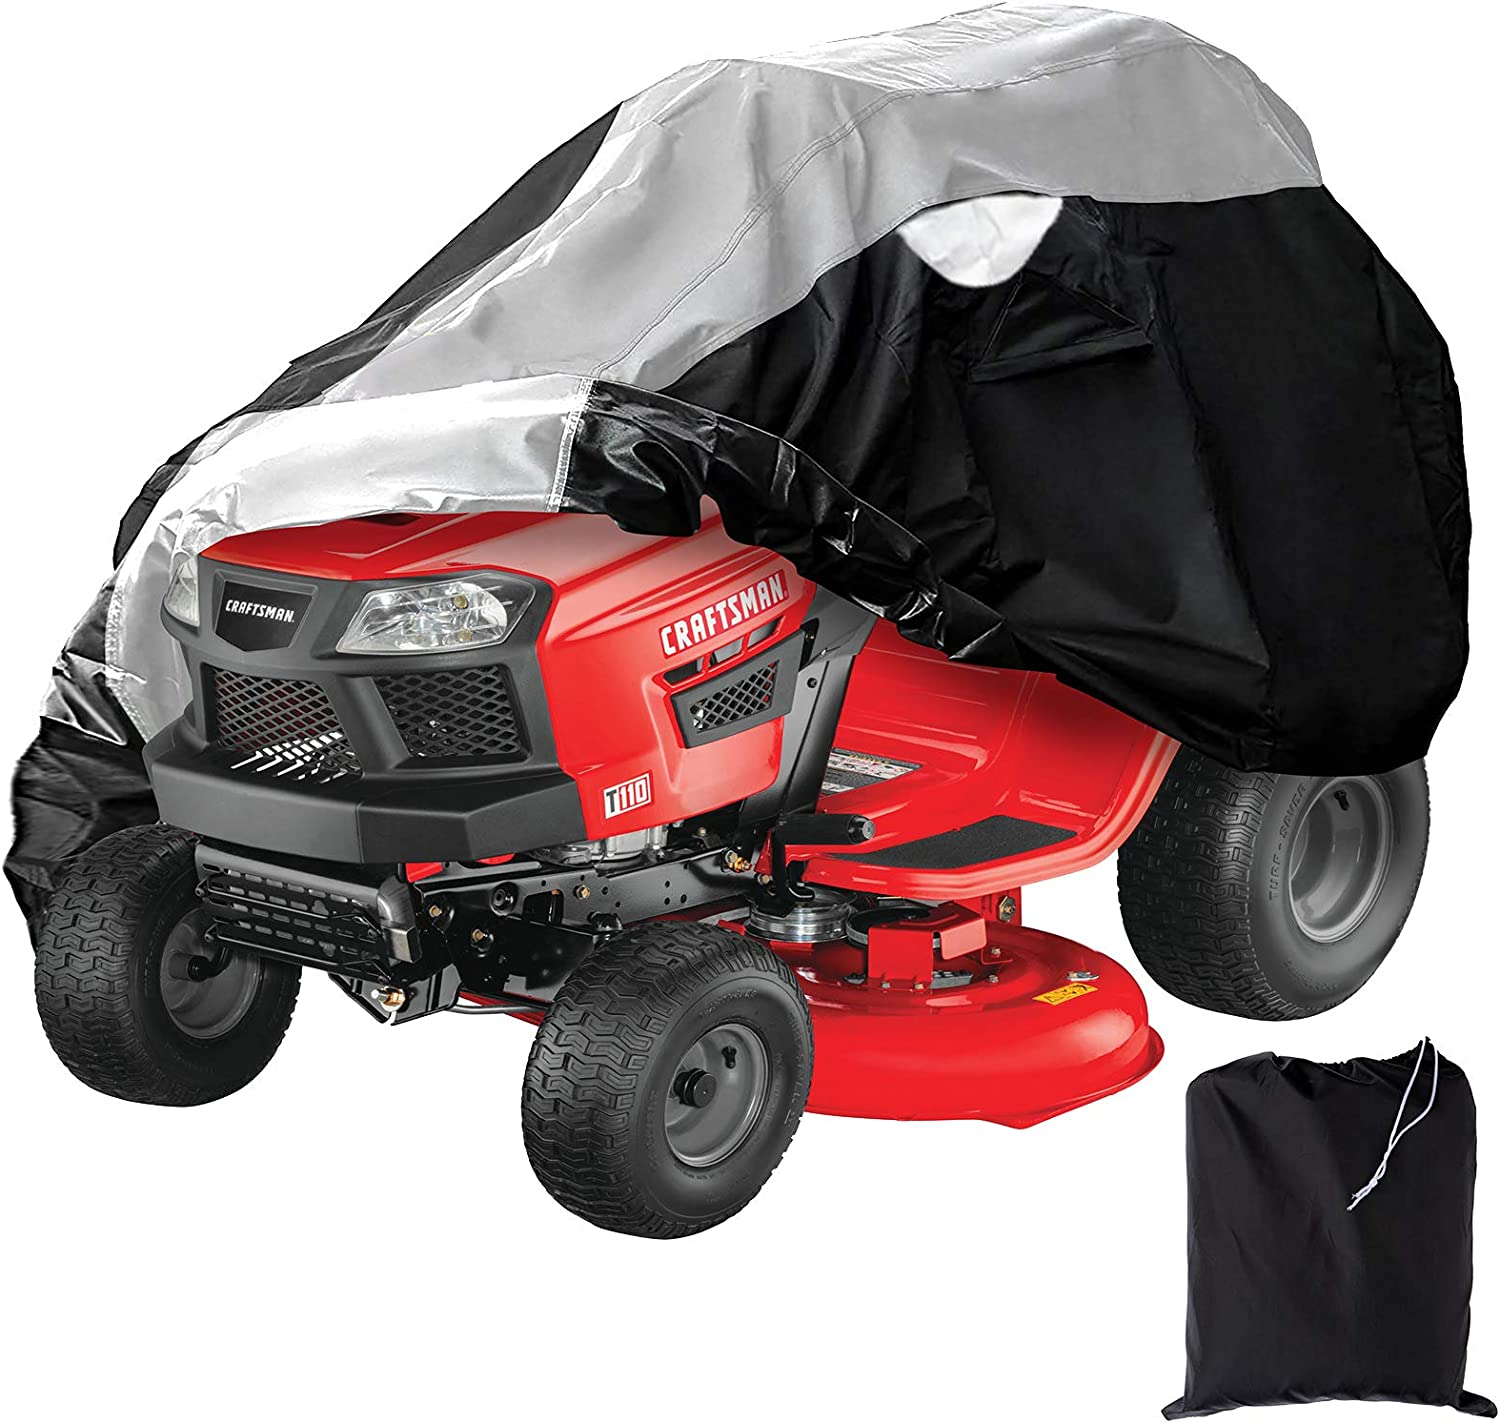 """Coverify Outdoors Lawn Mower Cover Heavy Duty Waterproof 300D Oxford Fabric, Universal Fits Decks up to 54"""" Lawn Tractor Cover, Black&Silver Color"""